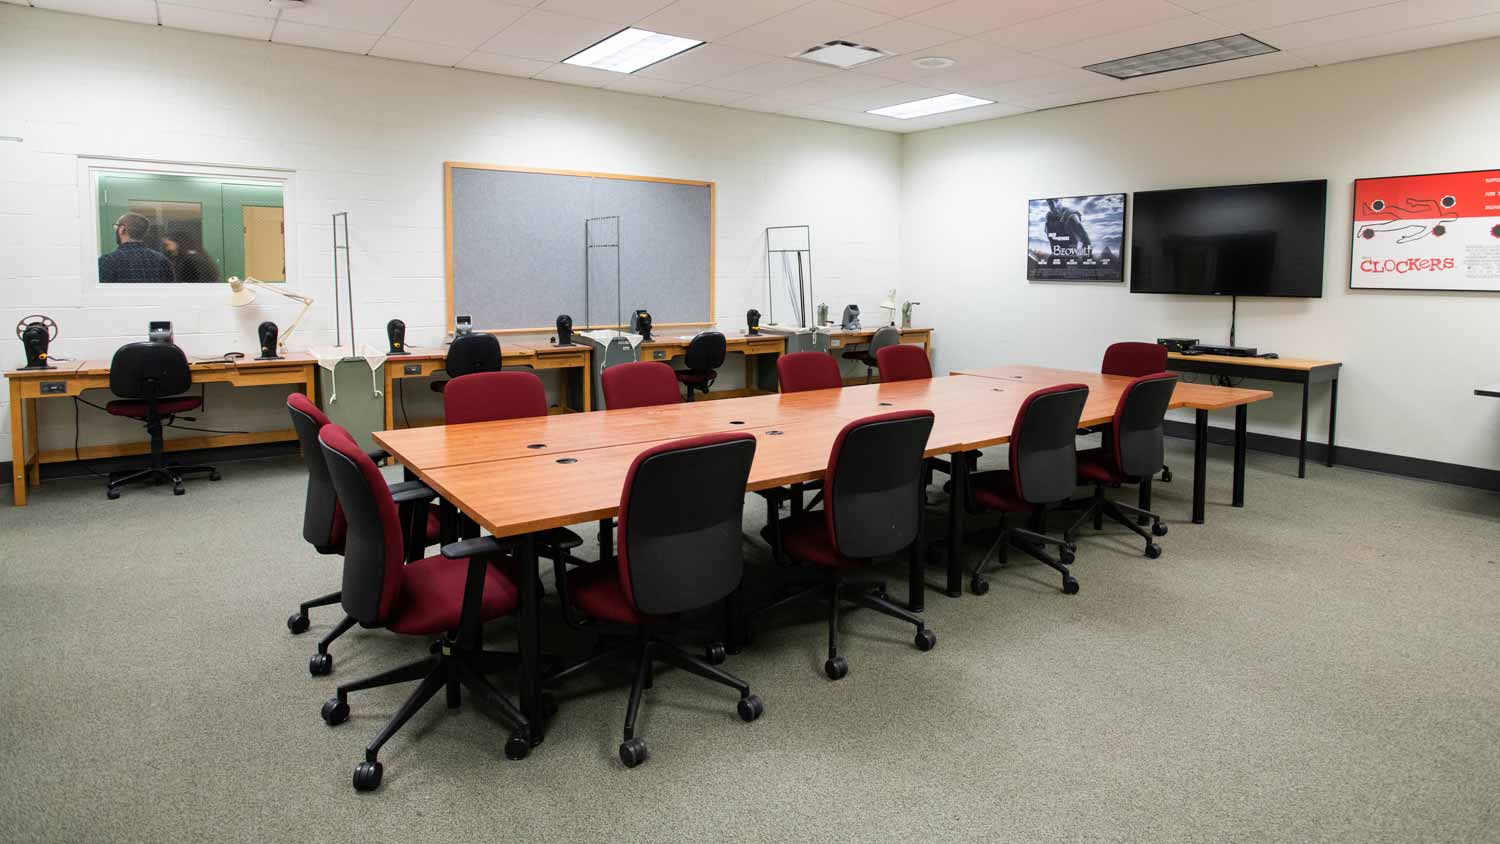 Seminar room with a large conference table facing a large TV screen